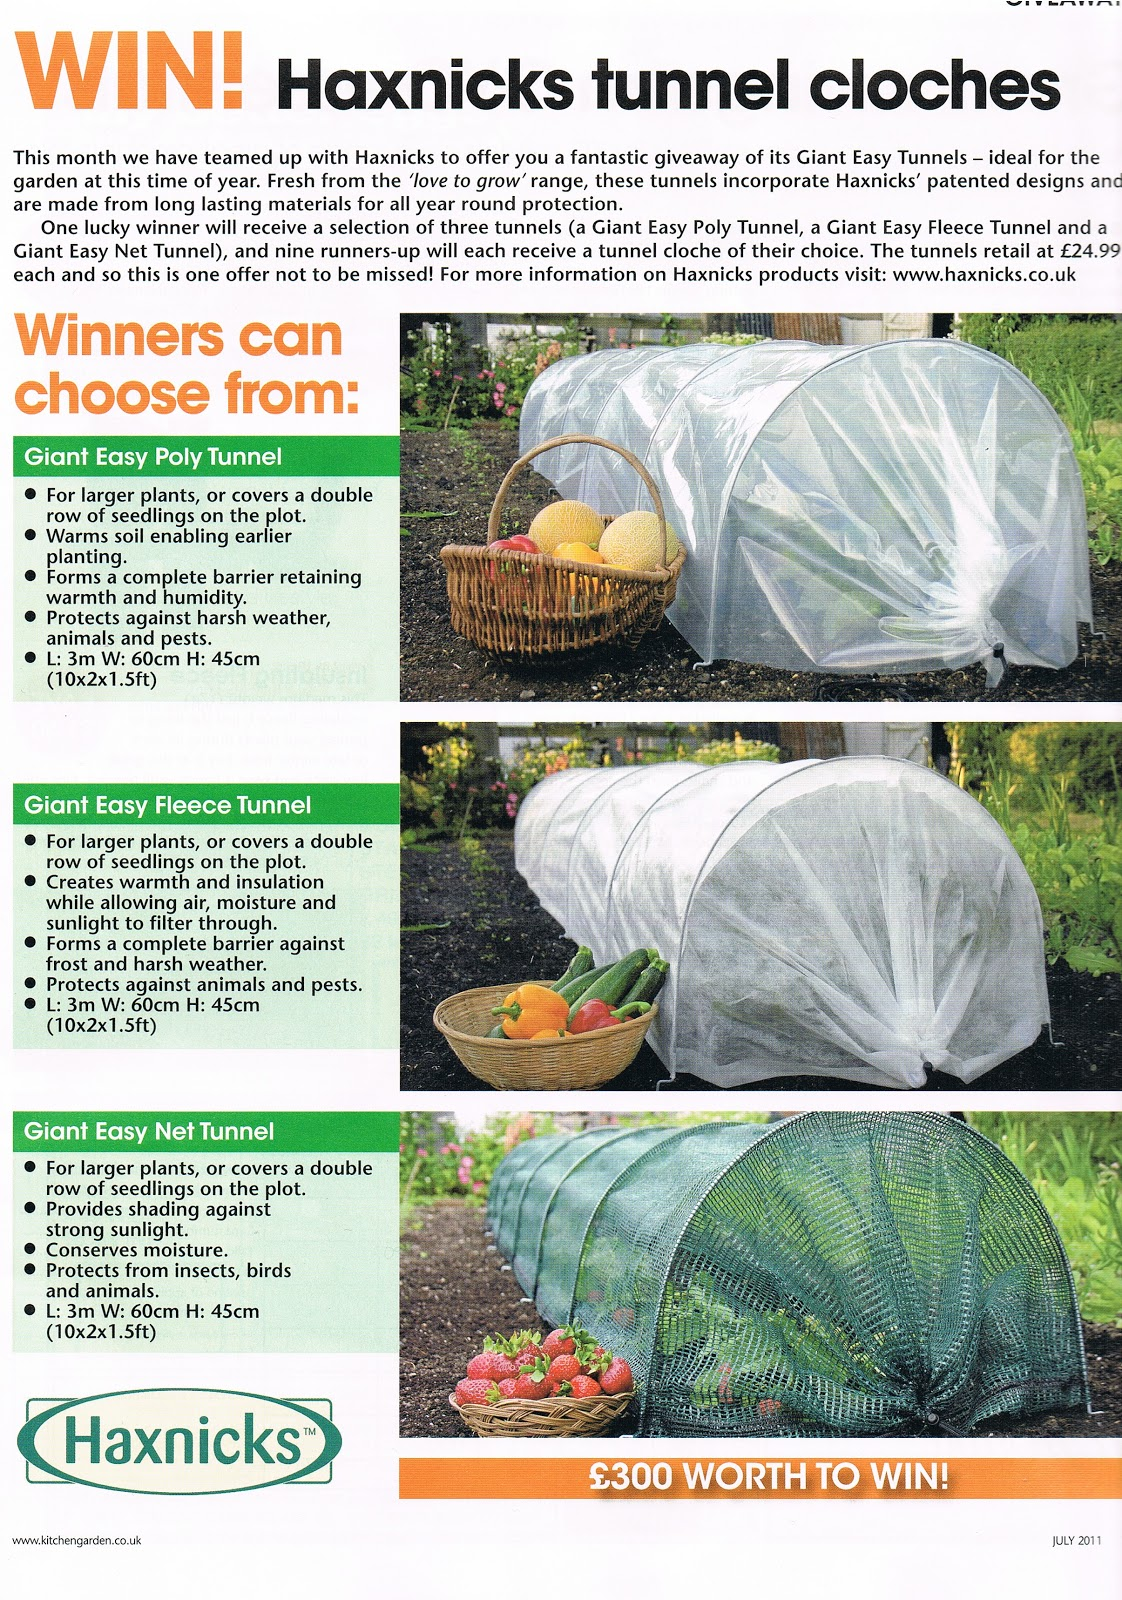 Kitchen Garden Magazine Win Easy Tunnels Haxnicks